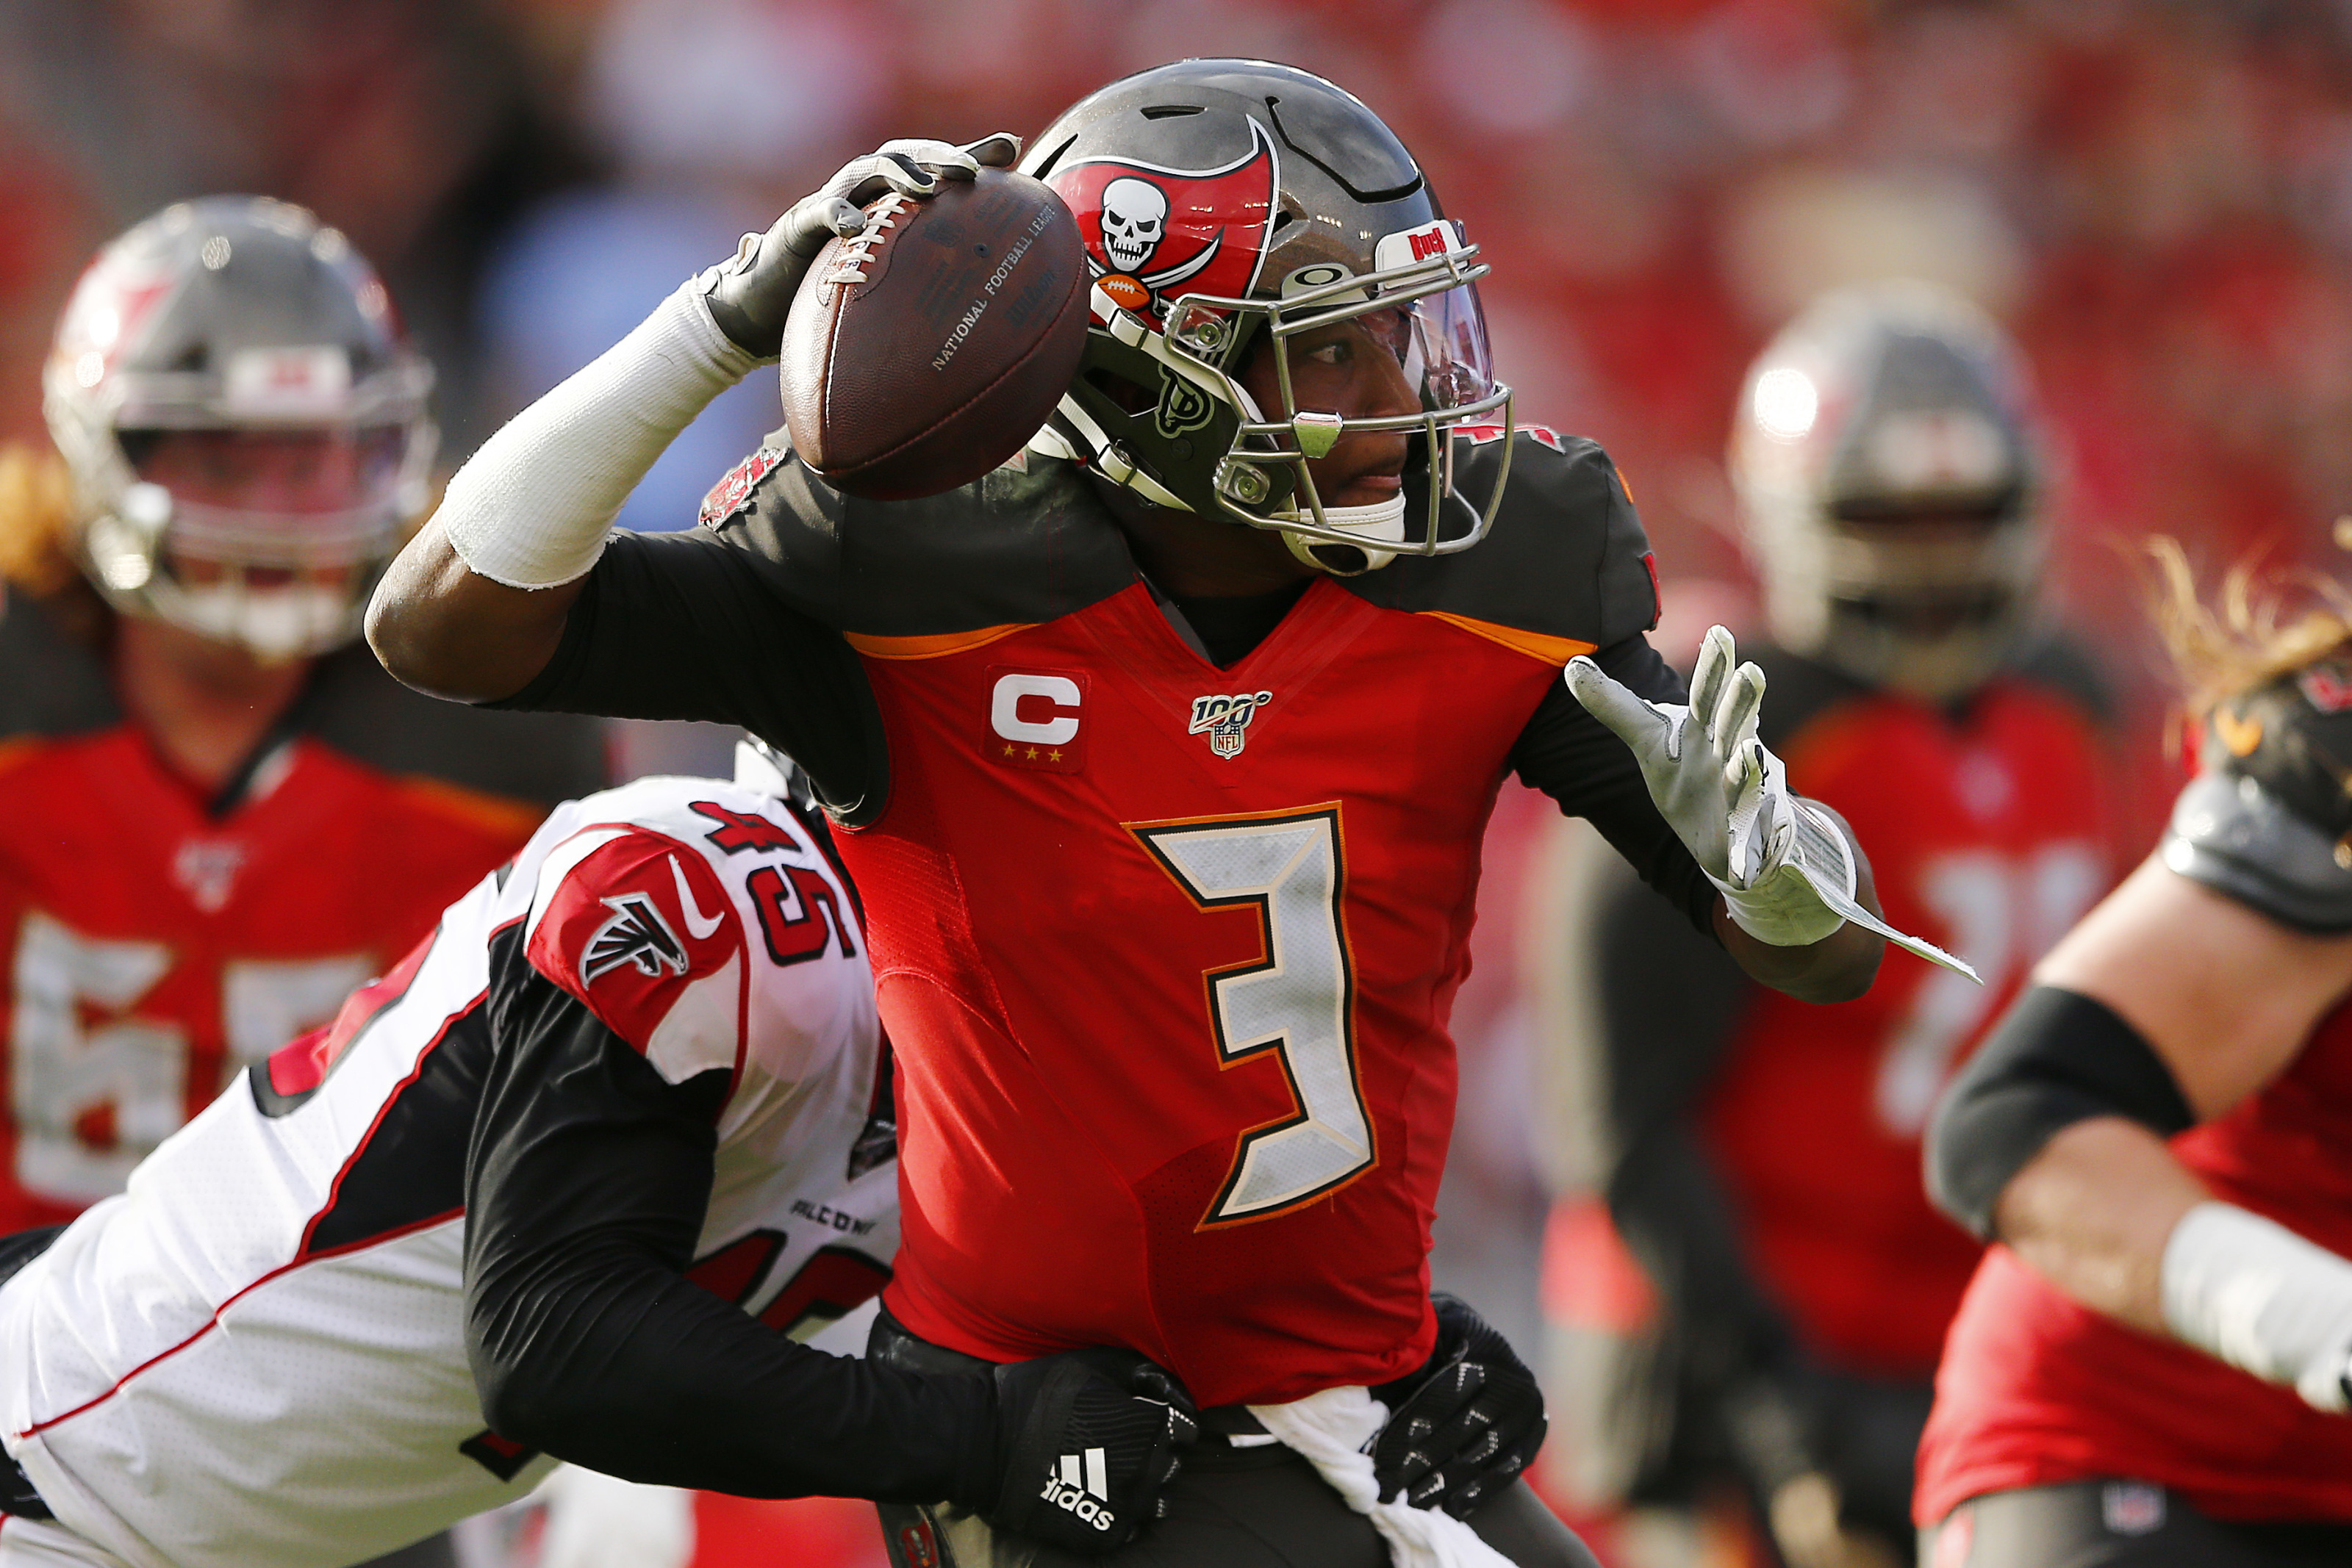 New Tampa Bay Buccaneers Uniforms Reaction And Photos